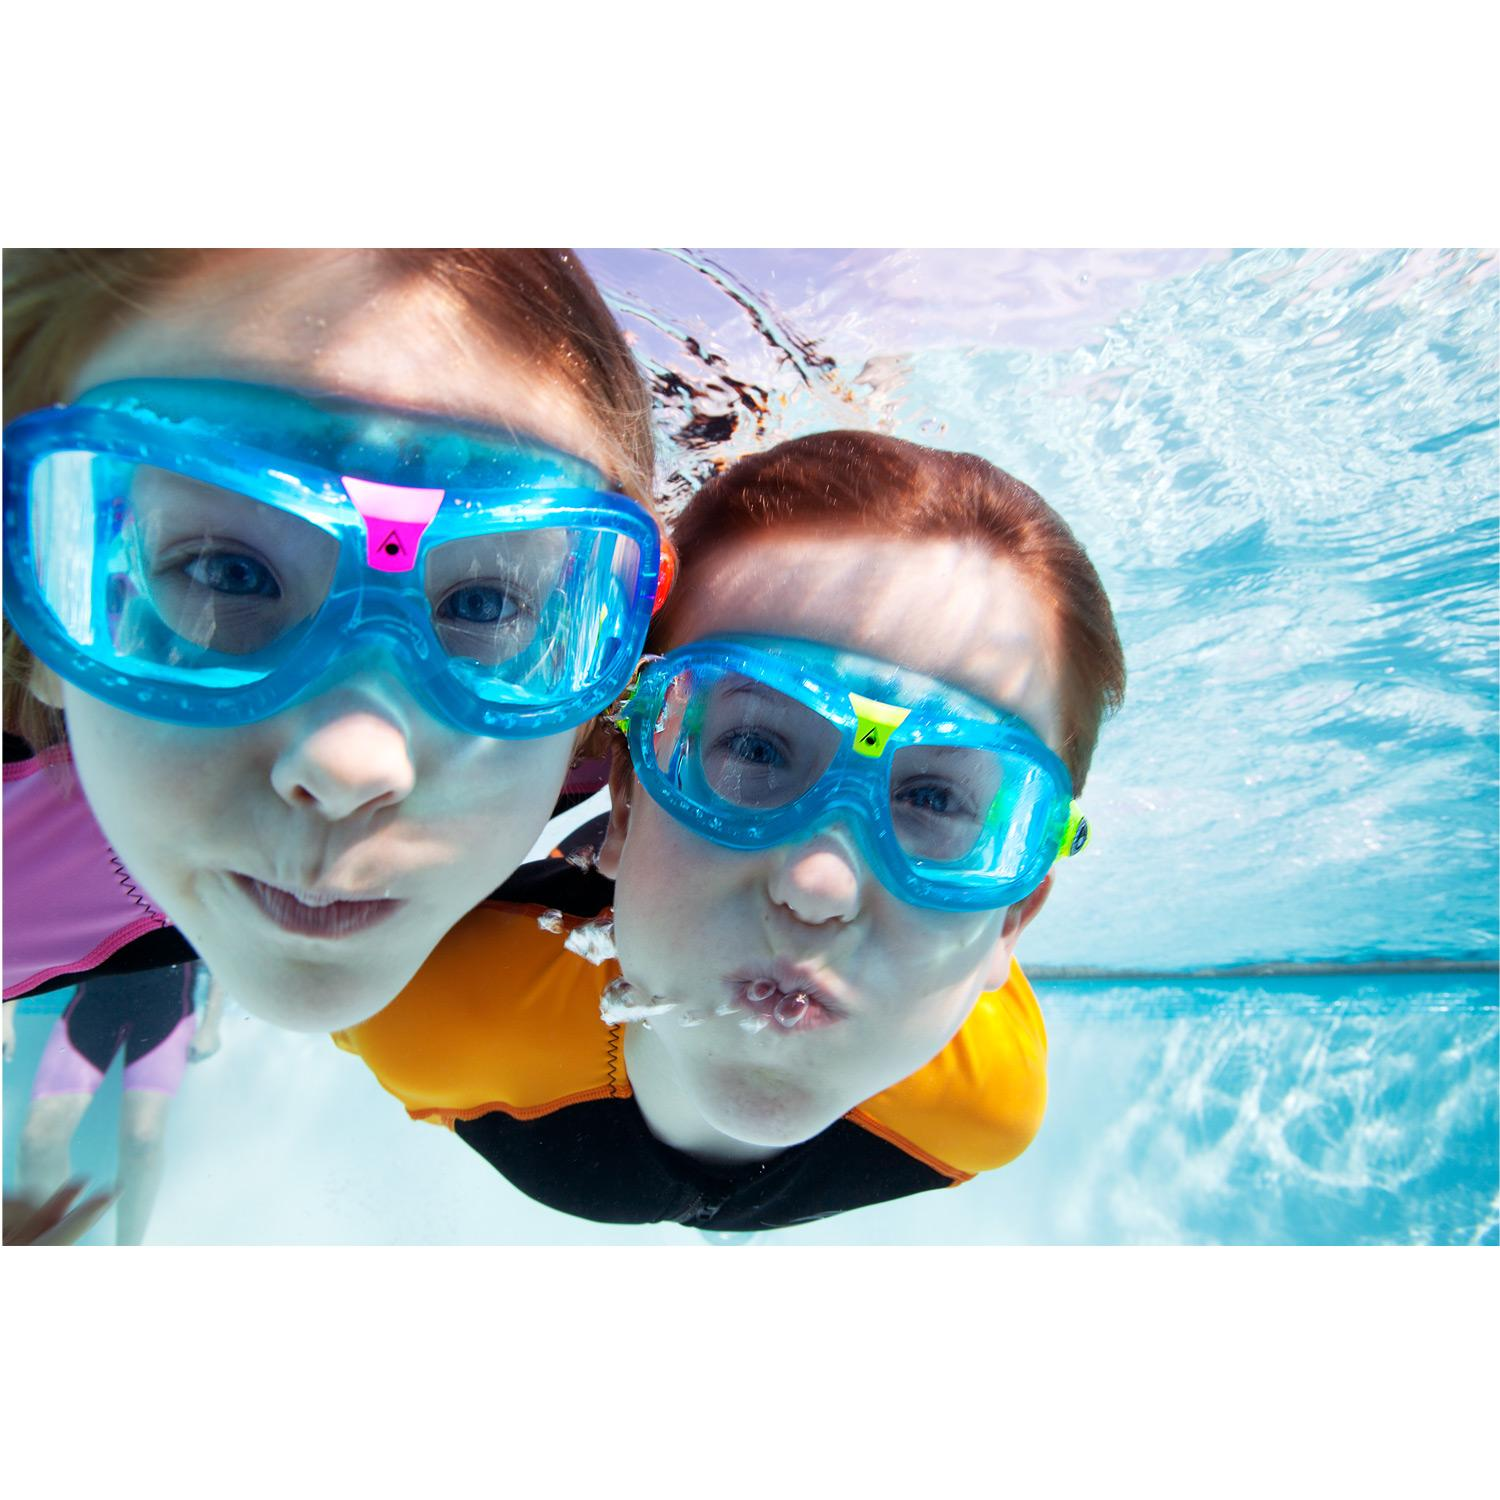 830f002d3d Aqua Sphere Seal Kids Swimming Goggles in blue with Clear Lenses -  Walmart.com